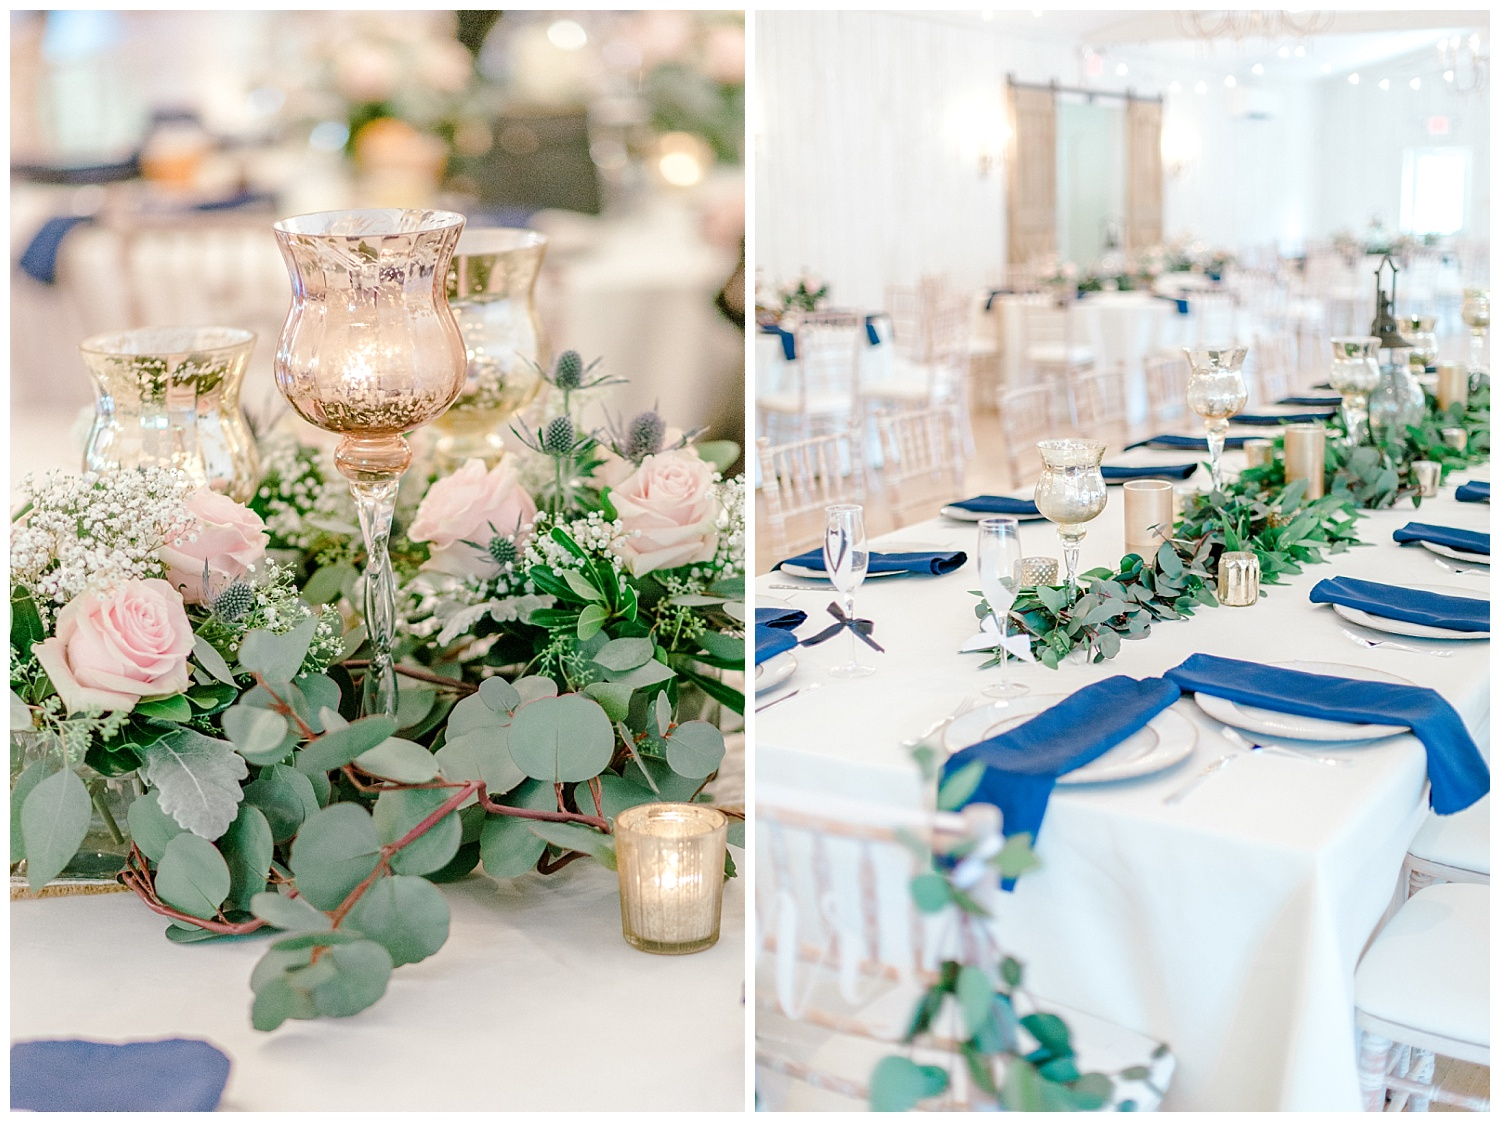 Navy and Blush pink inspired summertime whitewoods wedding in Northeastern Pennsylvania NEPA wapwallopen wedding venue by  PA based wedding and lifestyle photographer Lytle photography_0043.jpg